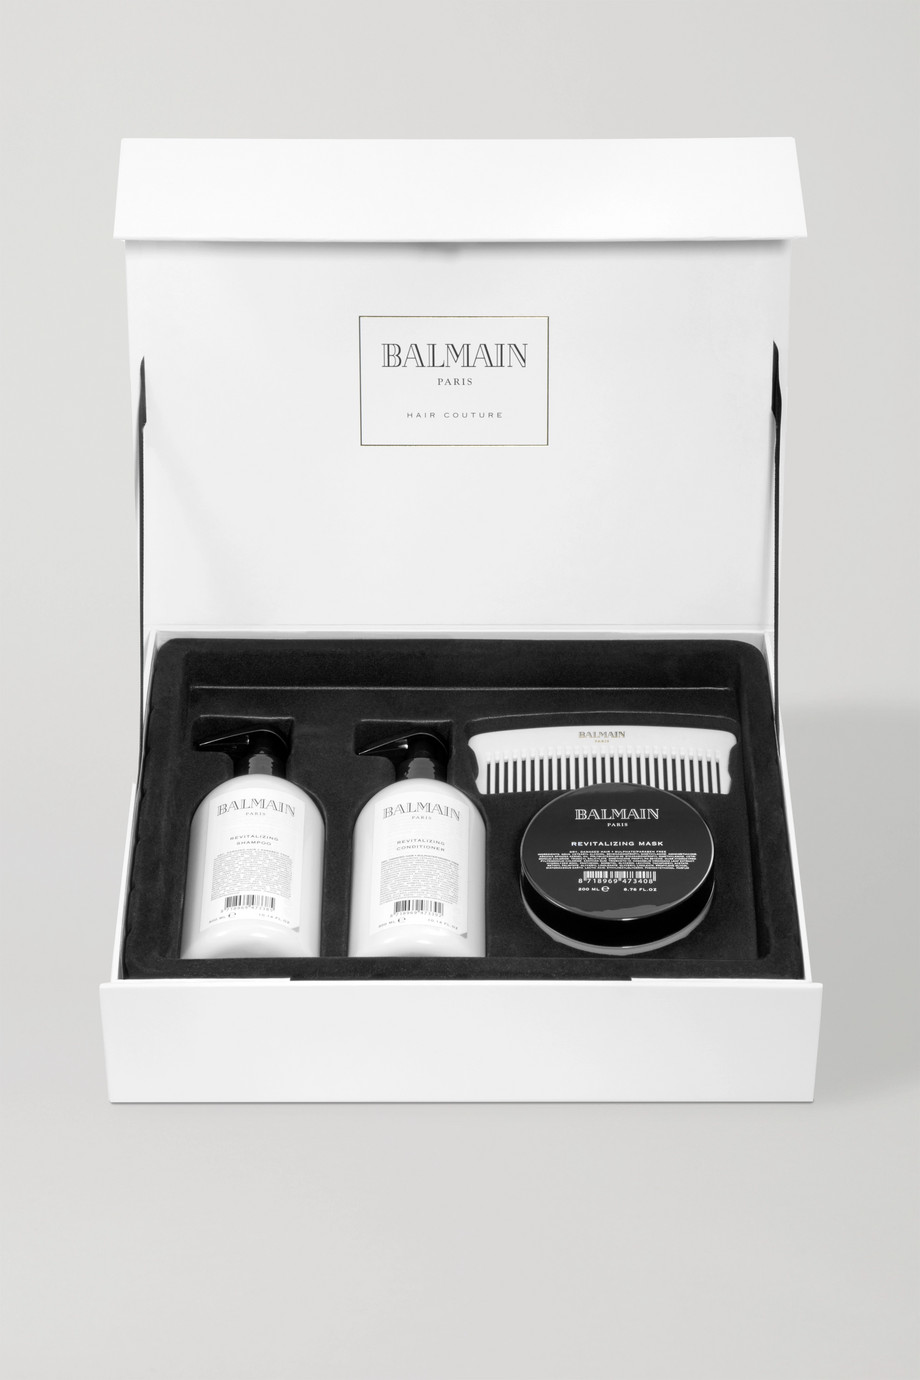 BALMAIN PARIS HAIR COUTURE Revitalizing Care Set